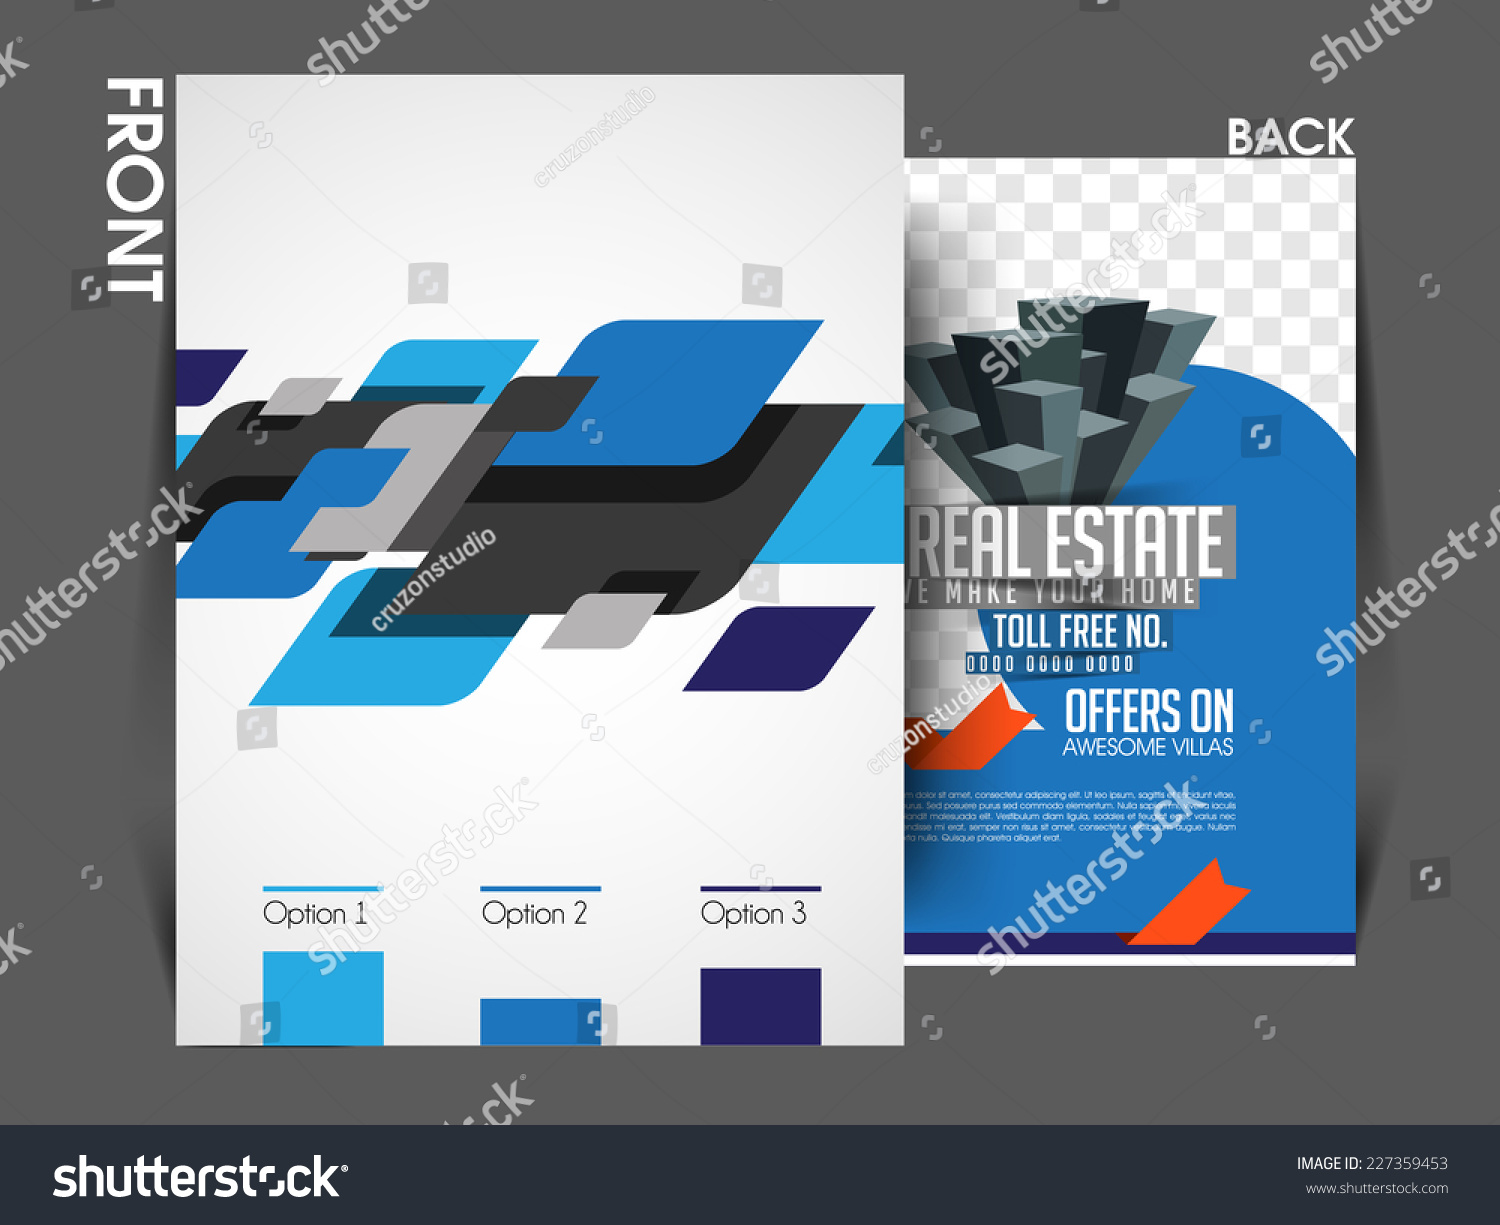 vector architecture real estate front back stock vector  vector architecture and real estate front back flyer template poster cover brochure design